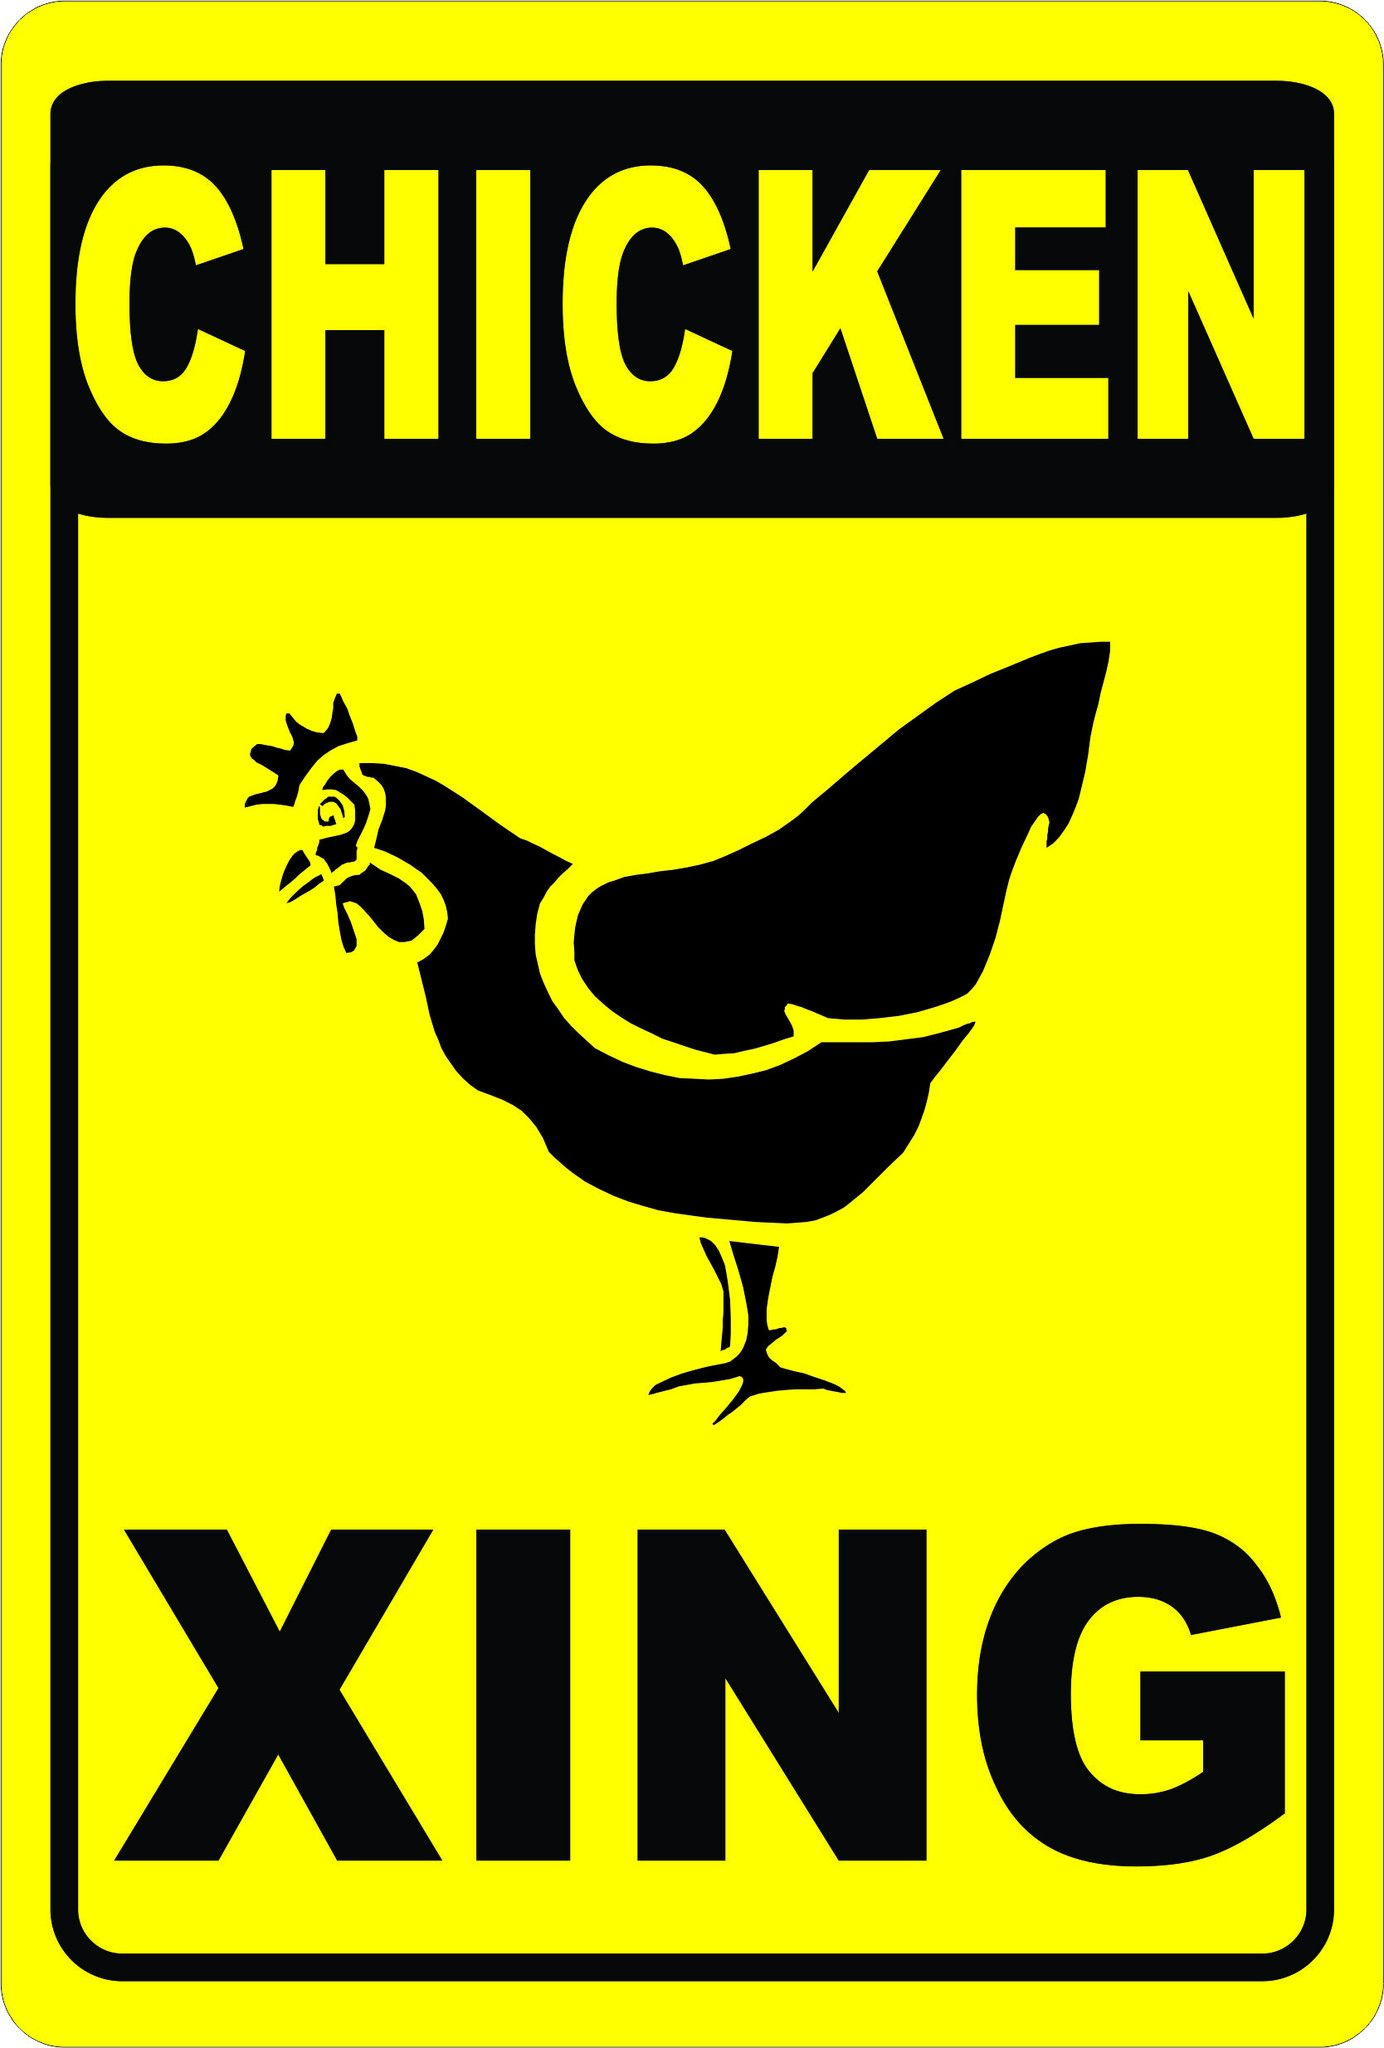 Chicken crossing sign crossing sign funny kitchen signs